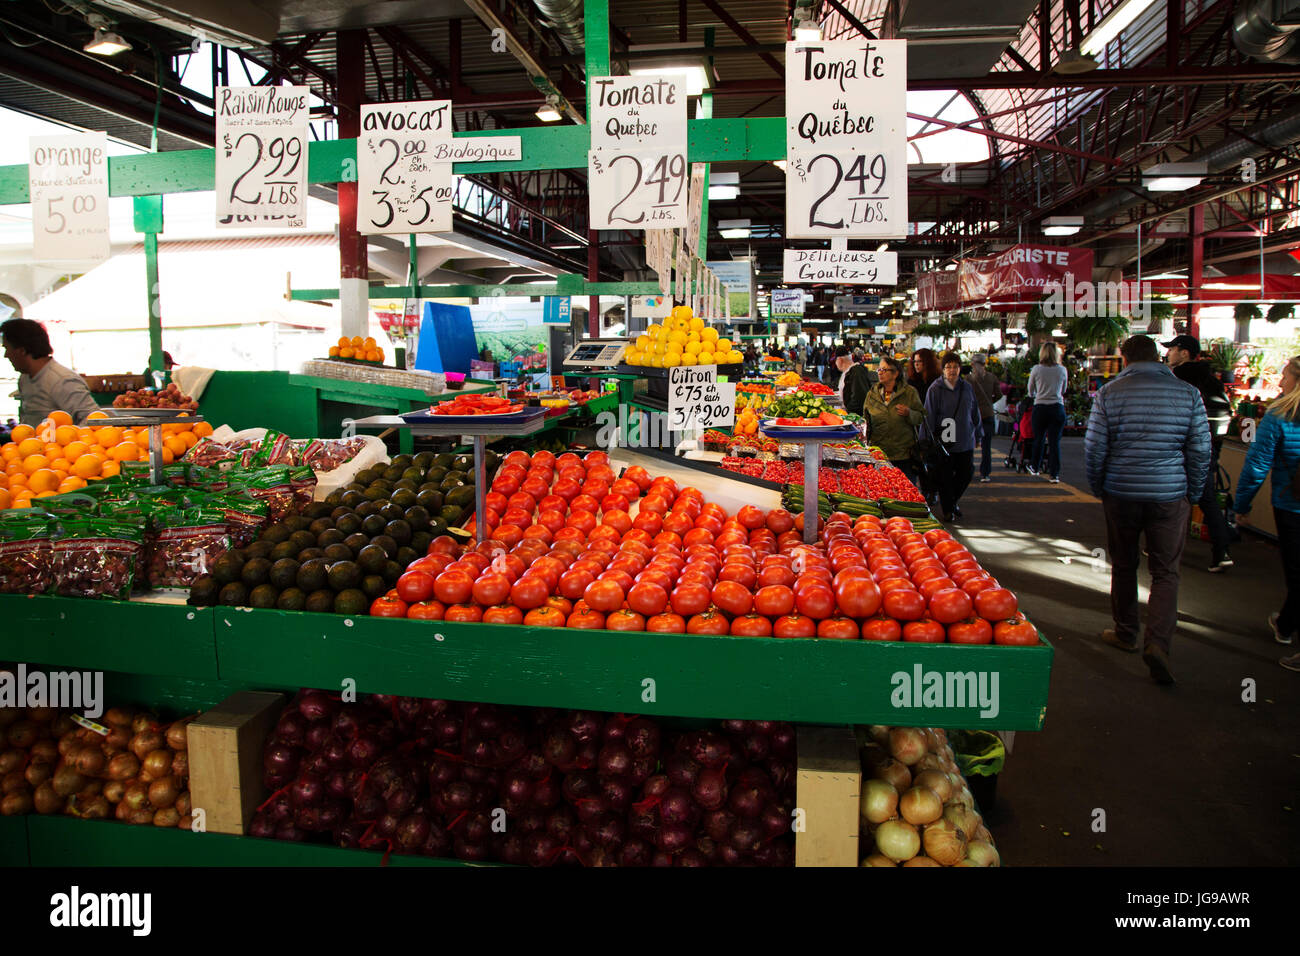 A greengrocer's stall at Jean-Talon Market in the Little Italy district of Montreal, Canada. The public market - Stock Image